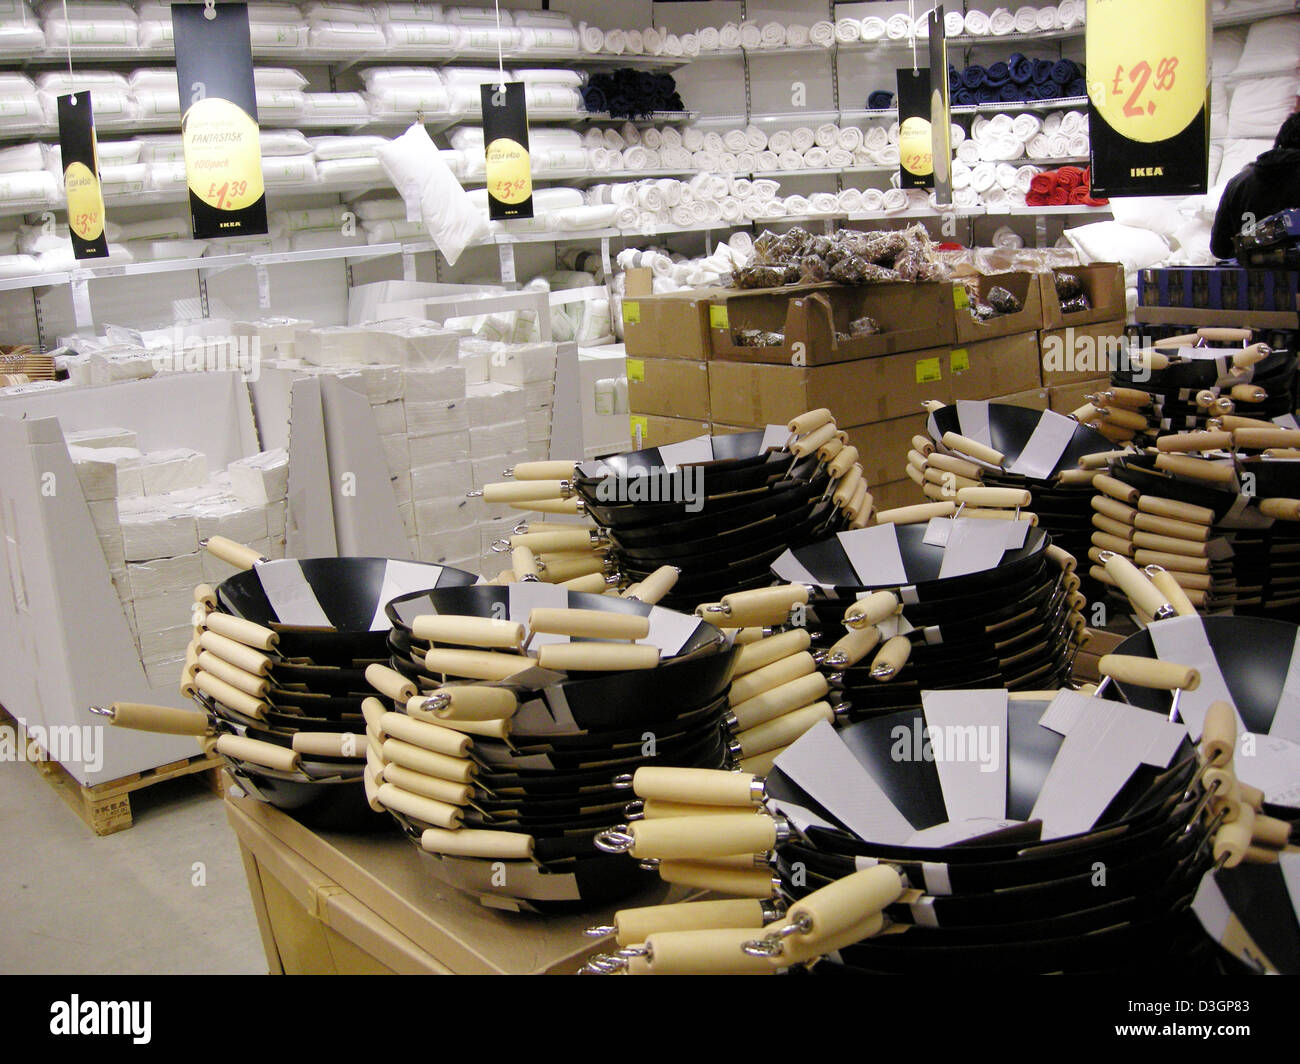 Kitchen Equipment For Sale In An Ikea Shop Or Store England Uk Stock Photo Royalty Free Image